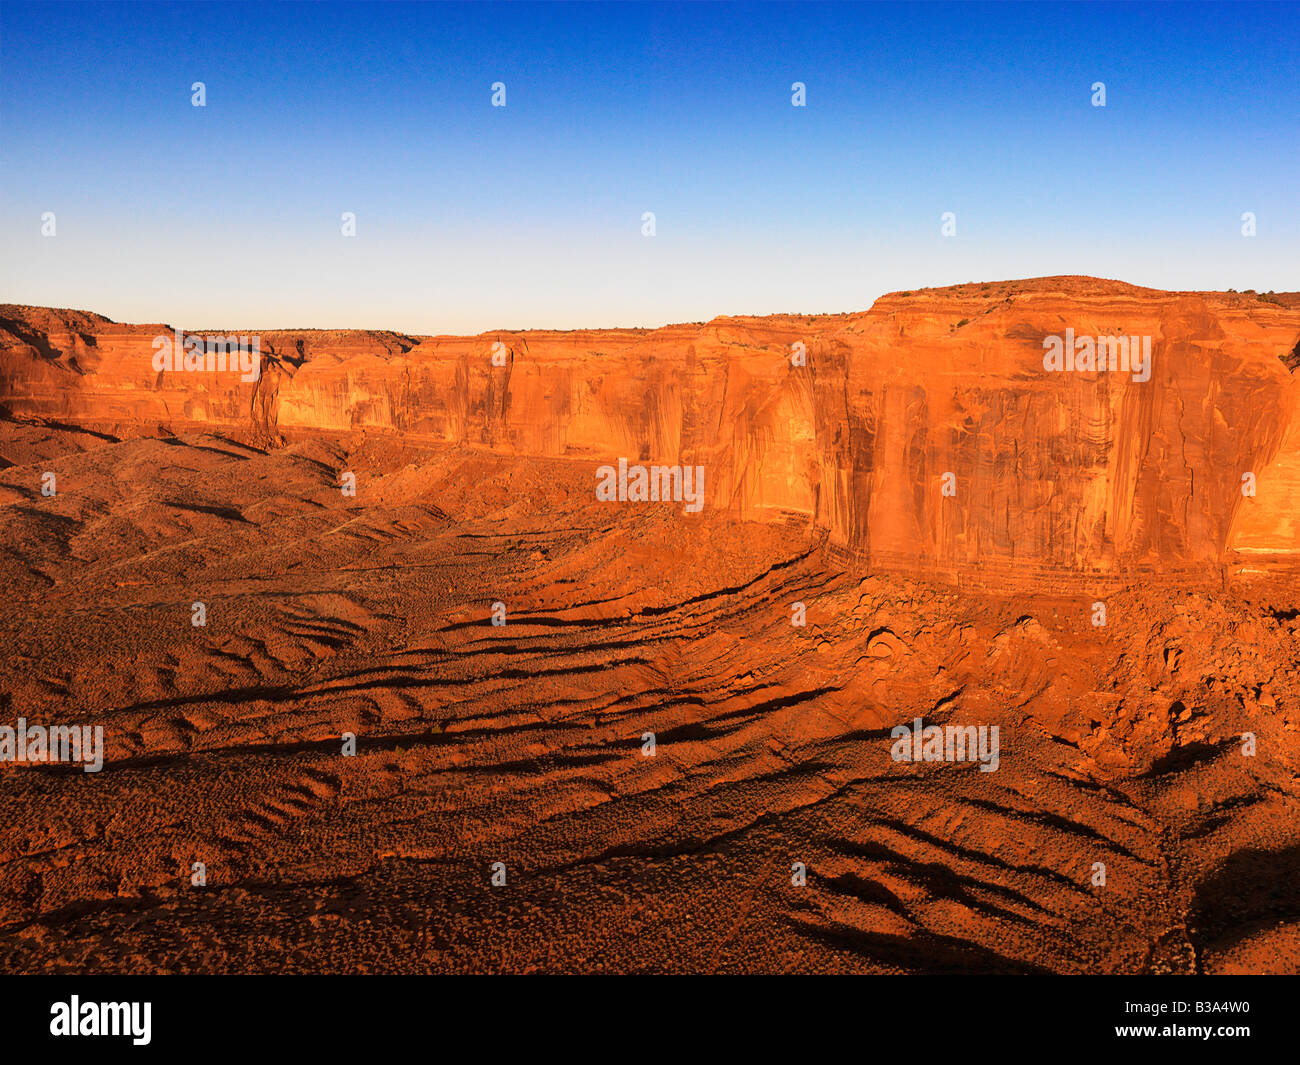 Scenic landscape of canyon in Monument Valley near the border of Arizona and Utah United States - Stock Image